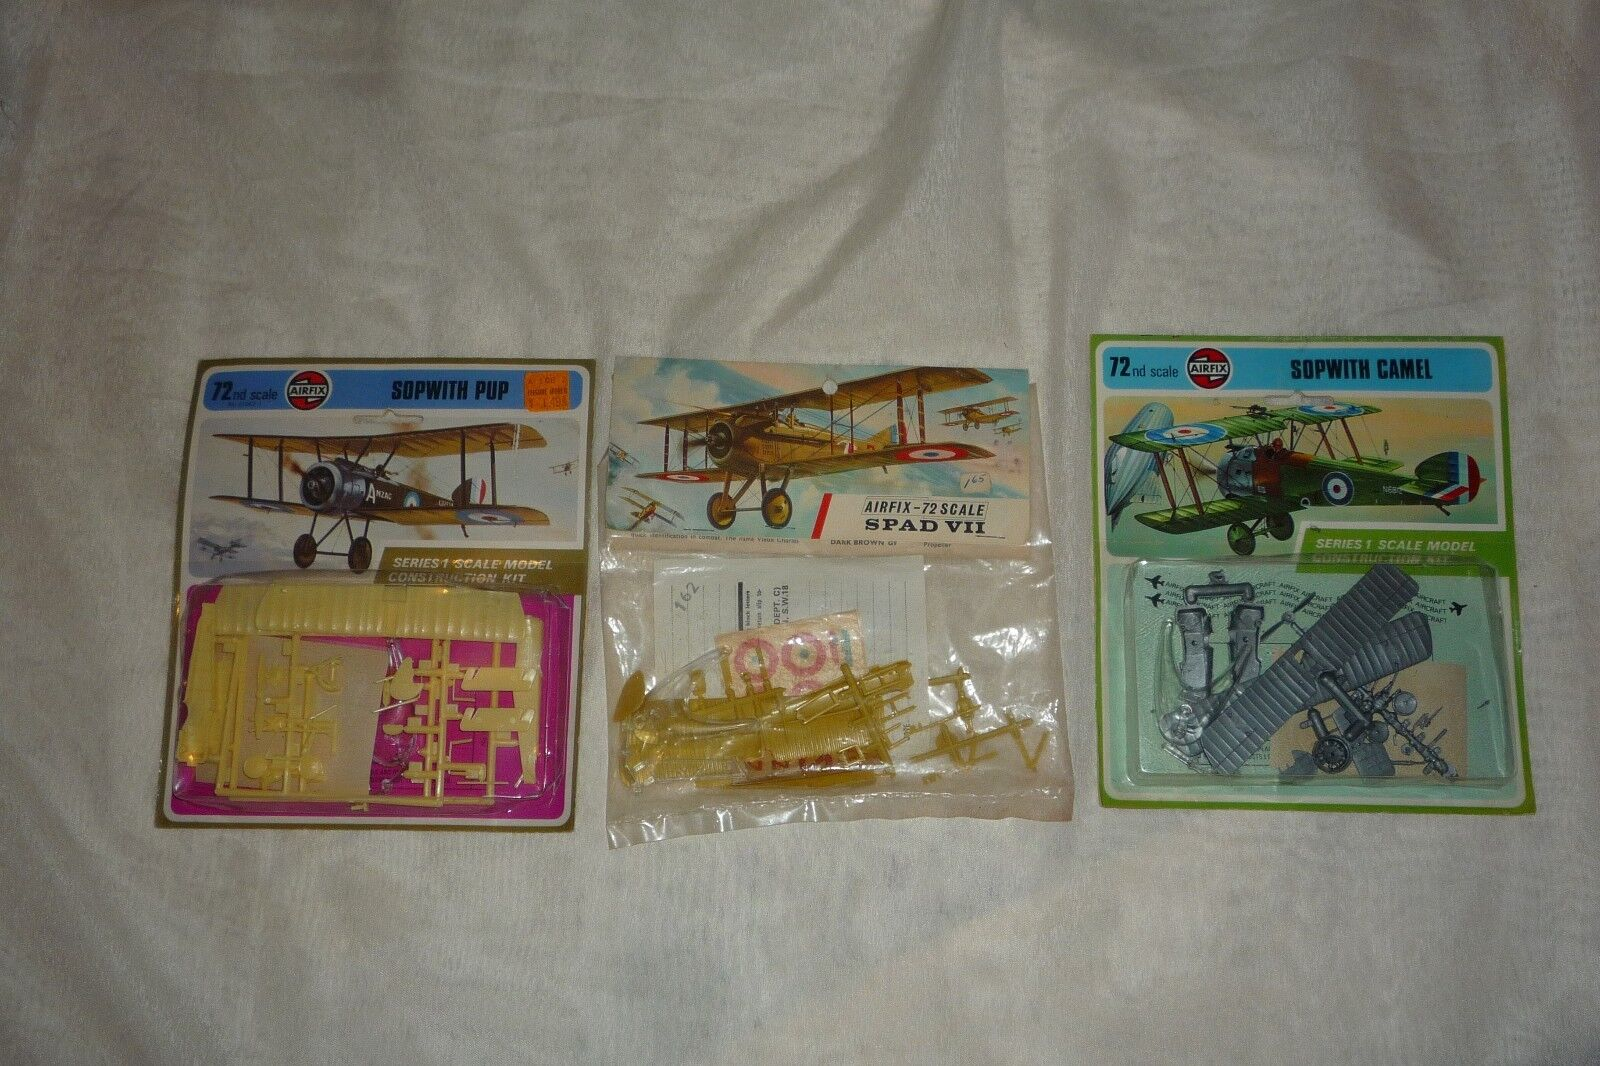 Lot of 3 Vintage 60s & 70s Airfix 1 43 Scale Aircraft Planes SPAD VII SUPWITHS